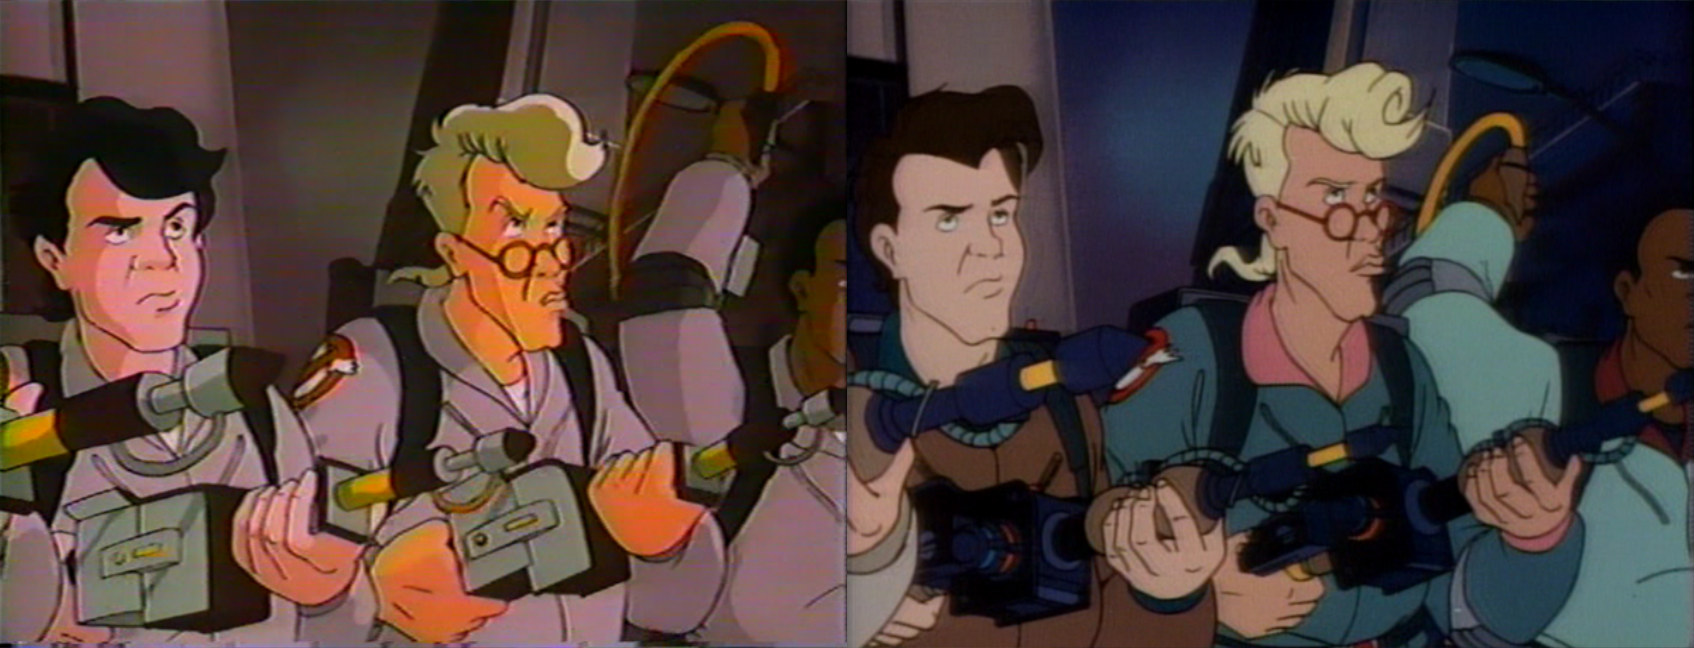 The Real Ghostbusters Pilot | Ghostbusters Wiki | FANDOM ...